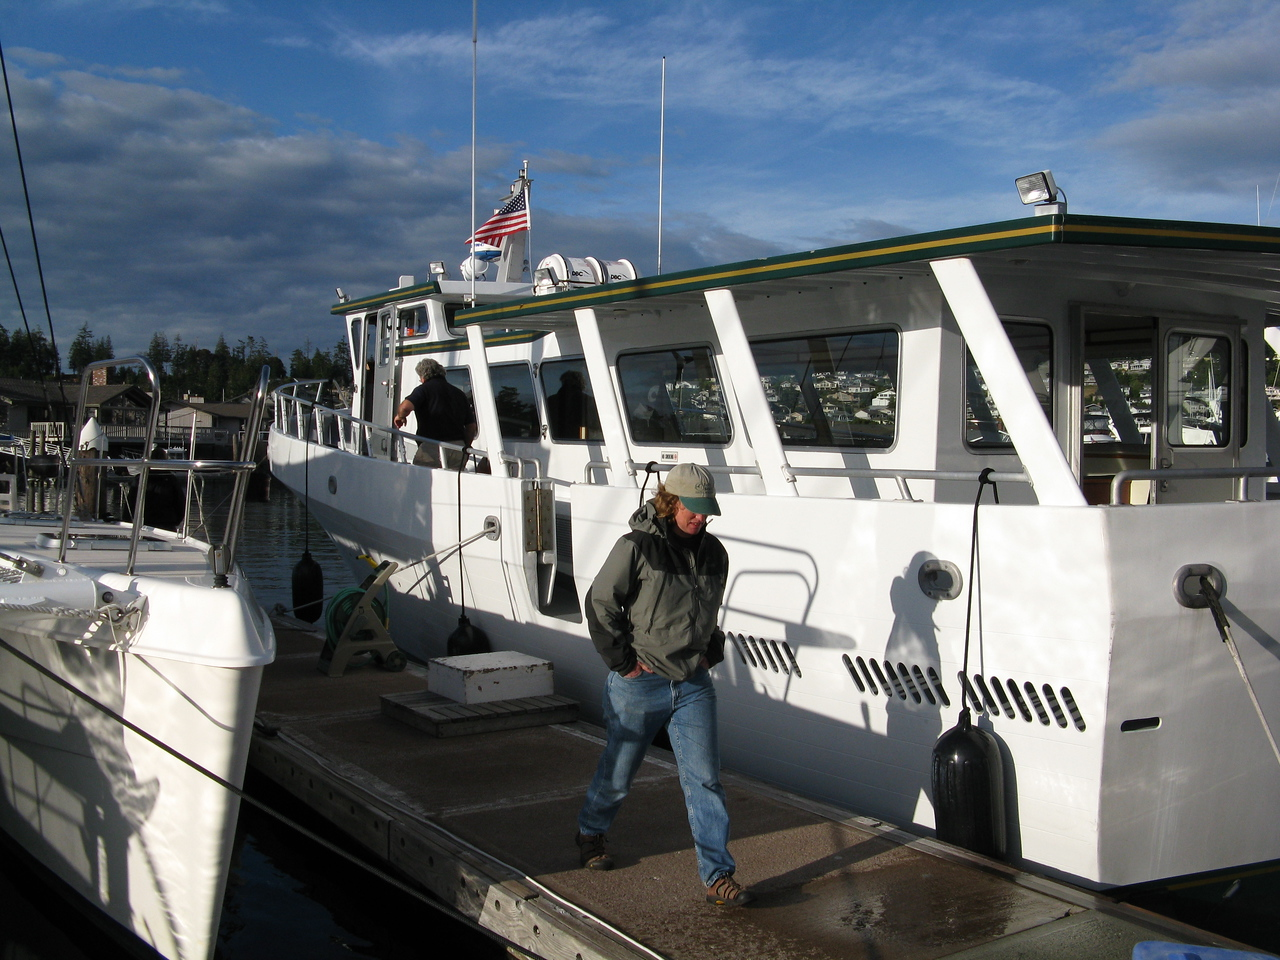 The Koinonia, our charter boat, after docking at its slip and unloading.